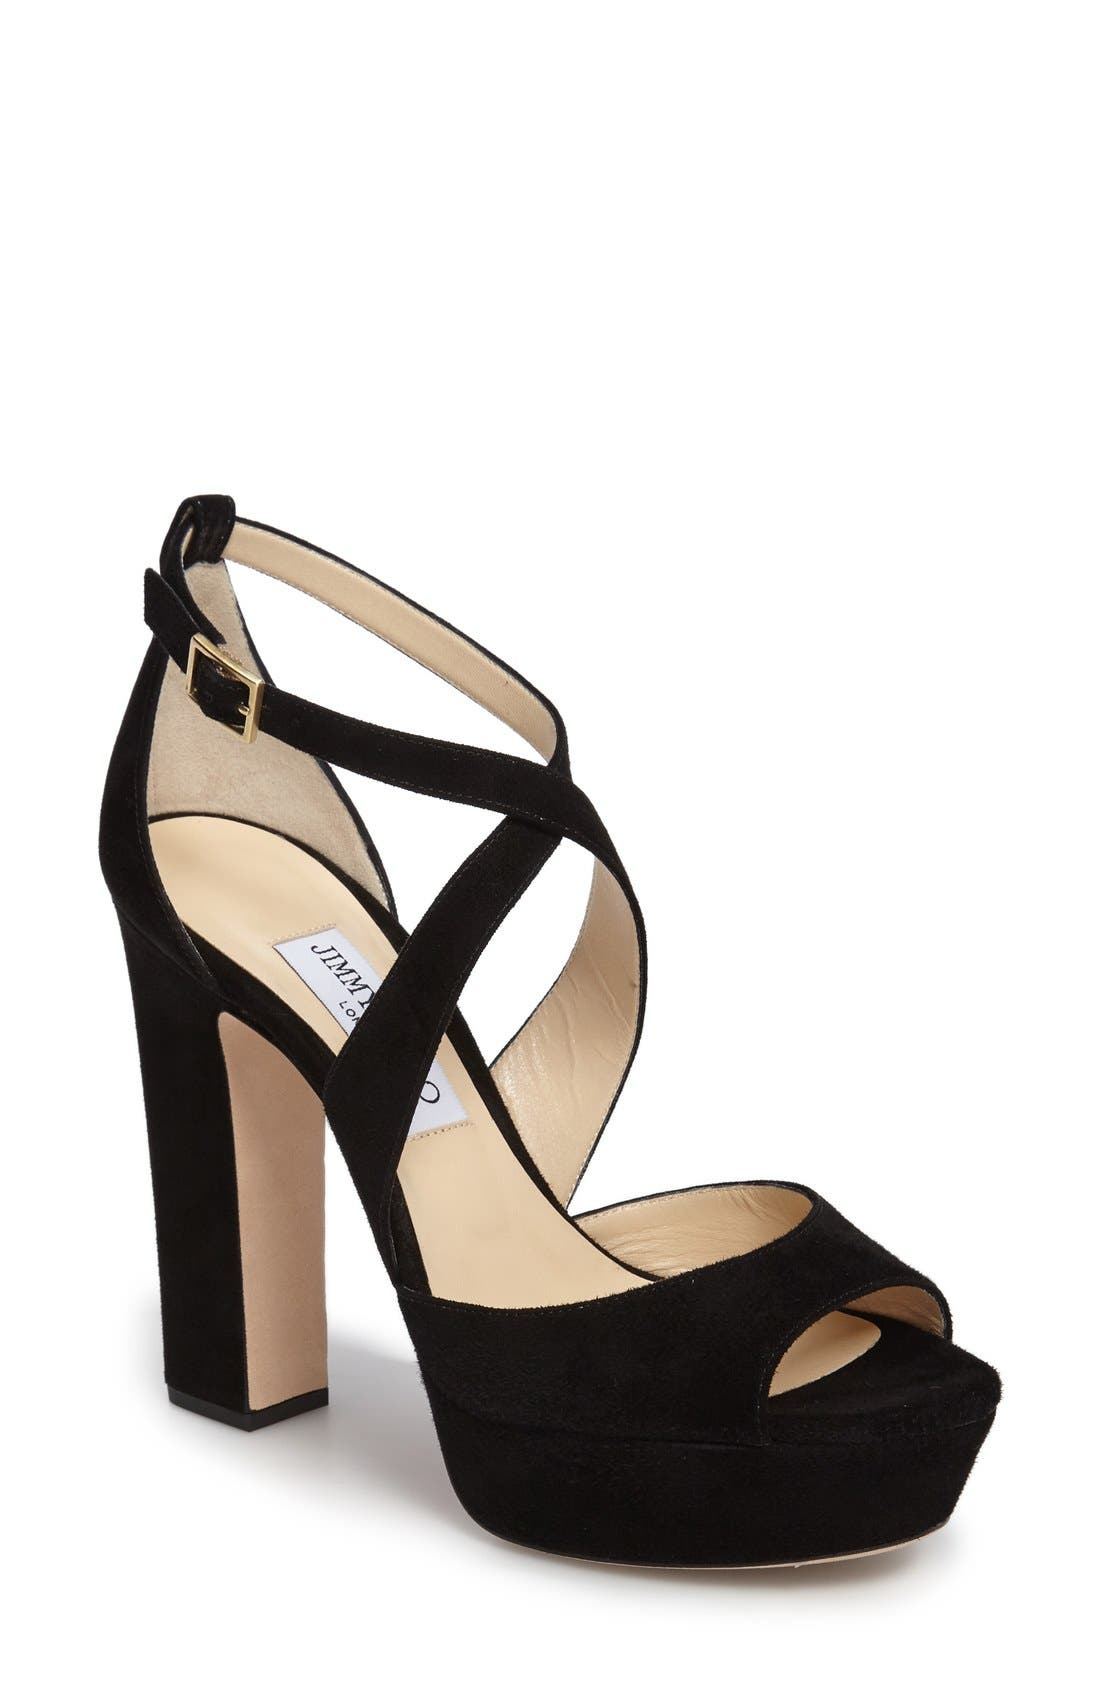 April Platform Sandal,                         Main,                         color, Black Suede